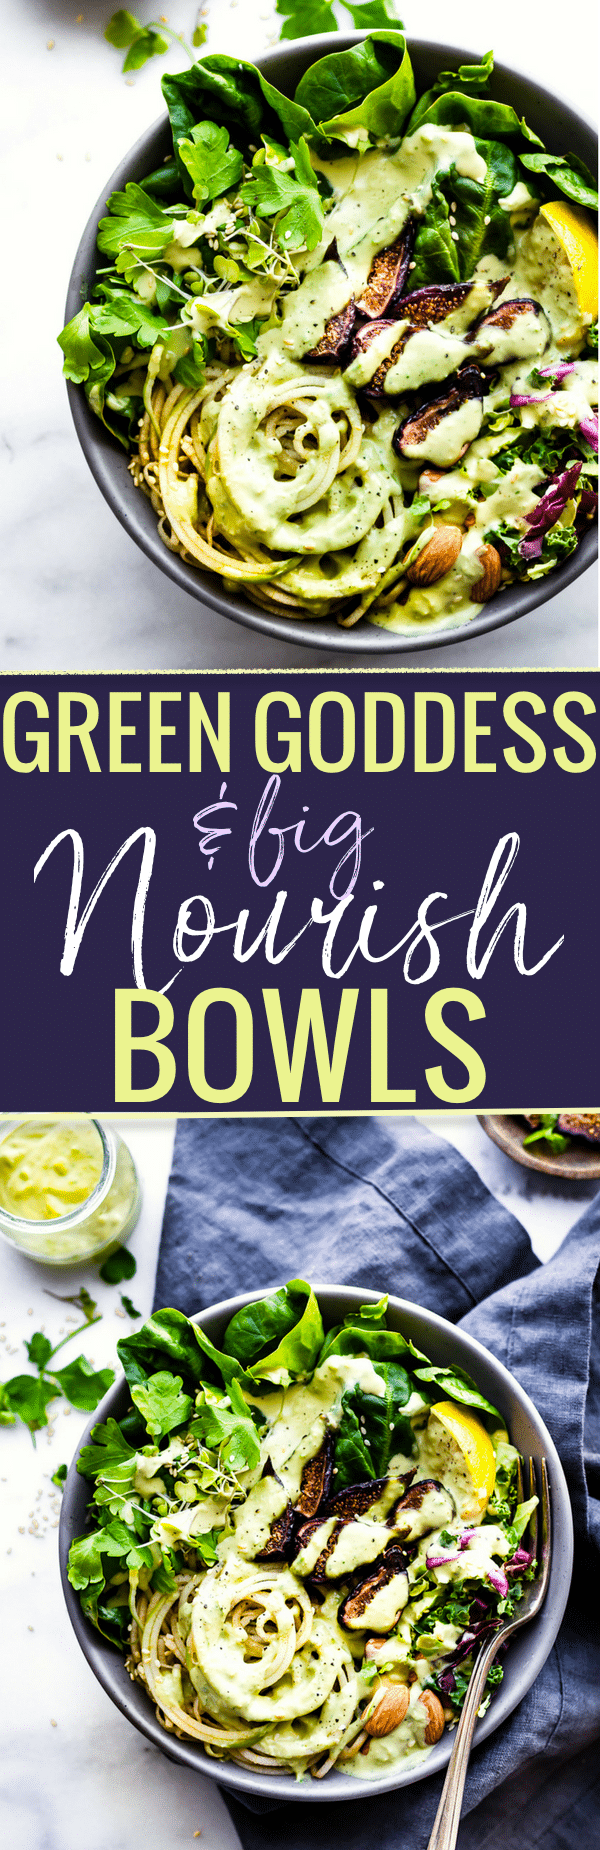 Quick and Easy Green Goddess Fig Nourish Bowls! These plant powered nourish bowls are packed with super greens, healthy  fats, nature's candy (Fruit and Figs), and topped with homemade green goddess dressing. They will fill you up and nourish you all at once. Paleo, Vegan, and Whole 30 friendly! www.cottercrunch.com